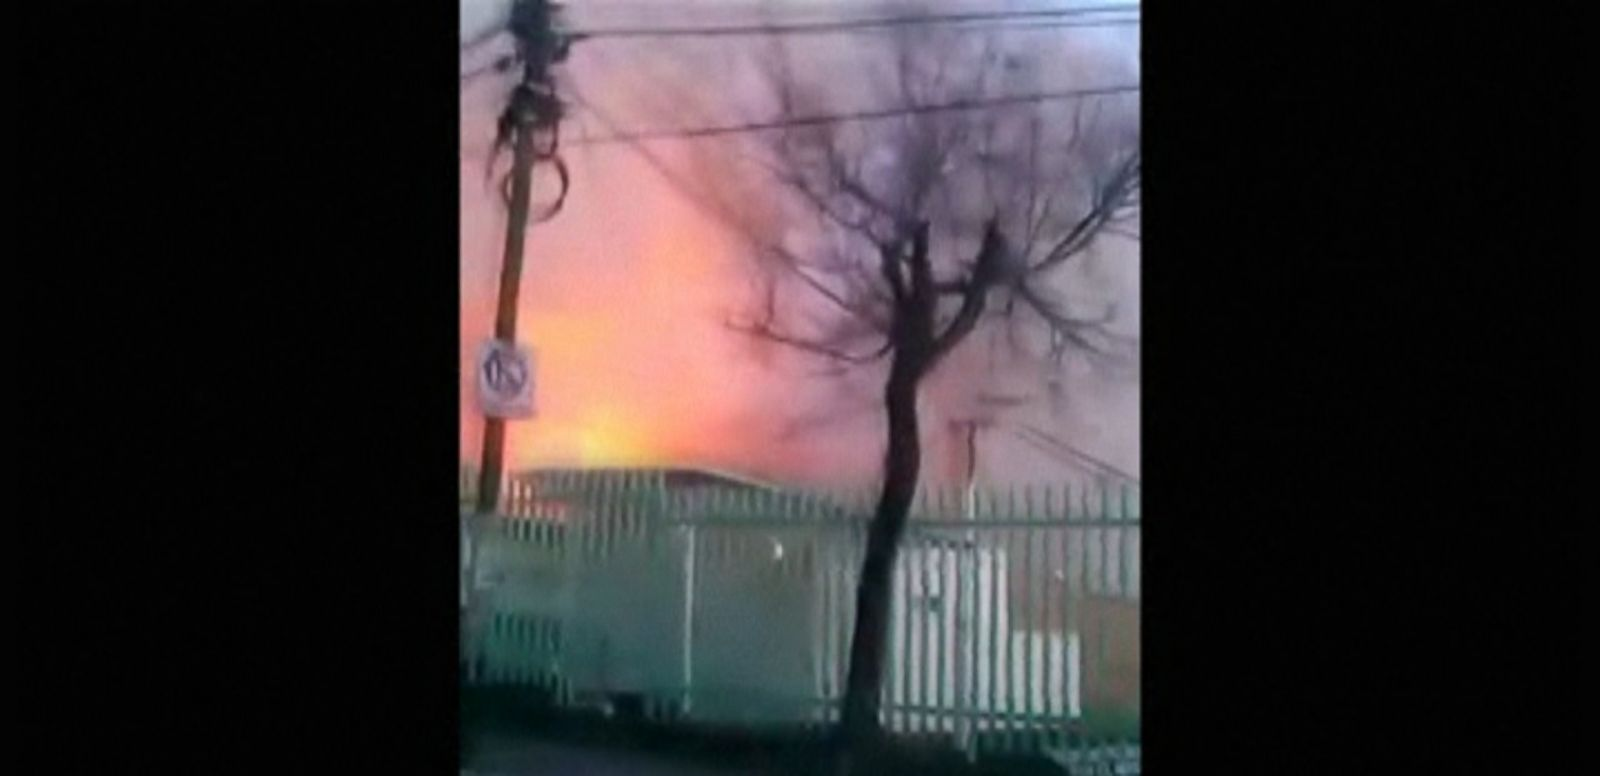 VIDEO: An eyewitness captured the moment a fireball erupted from a gas explosion at a Children's Hospital in Mexico City.